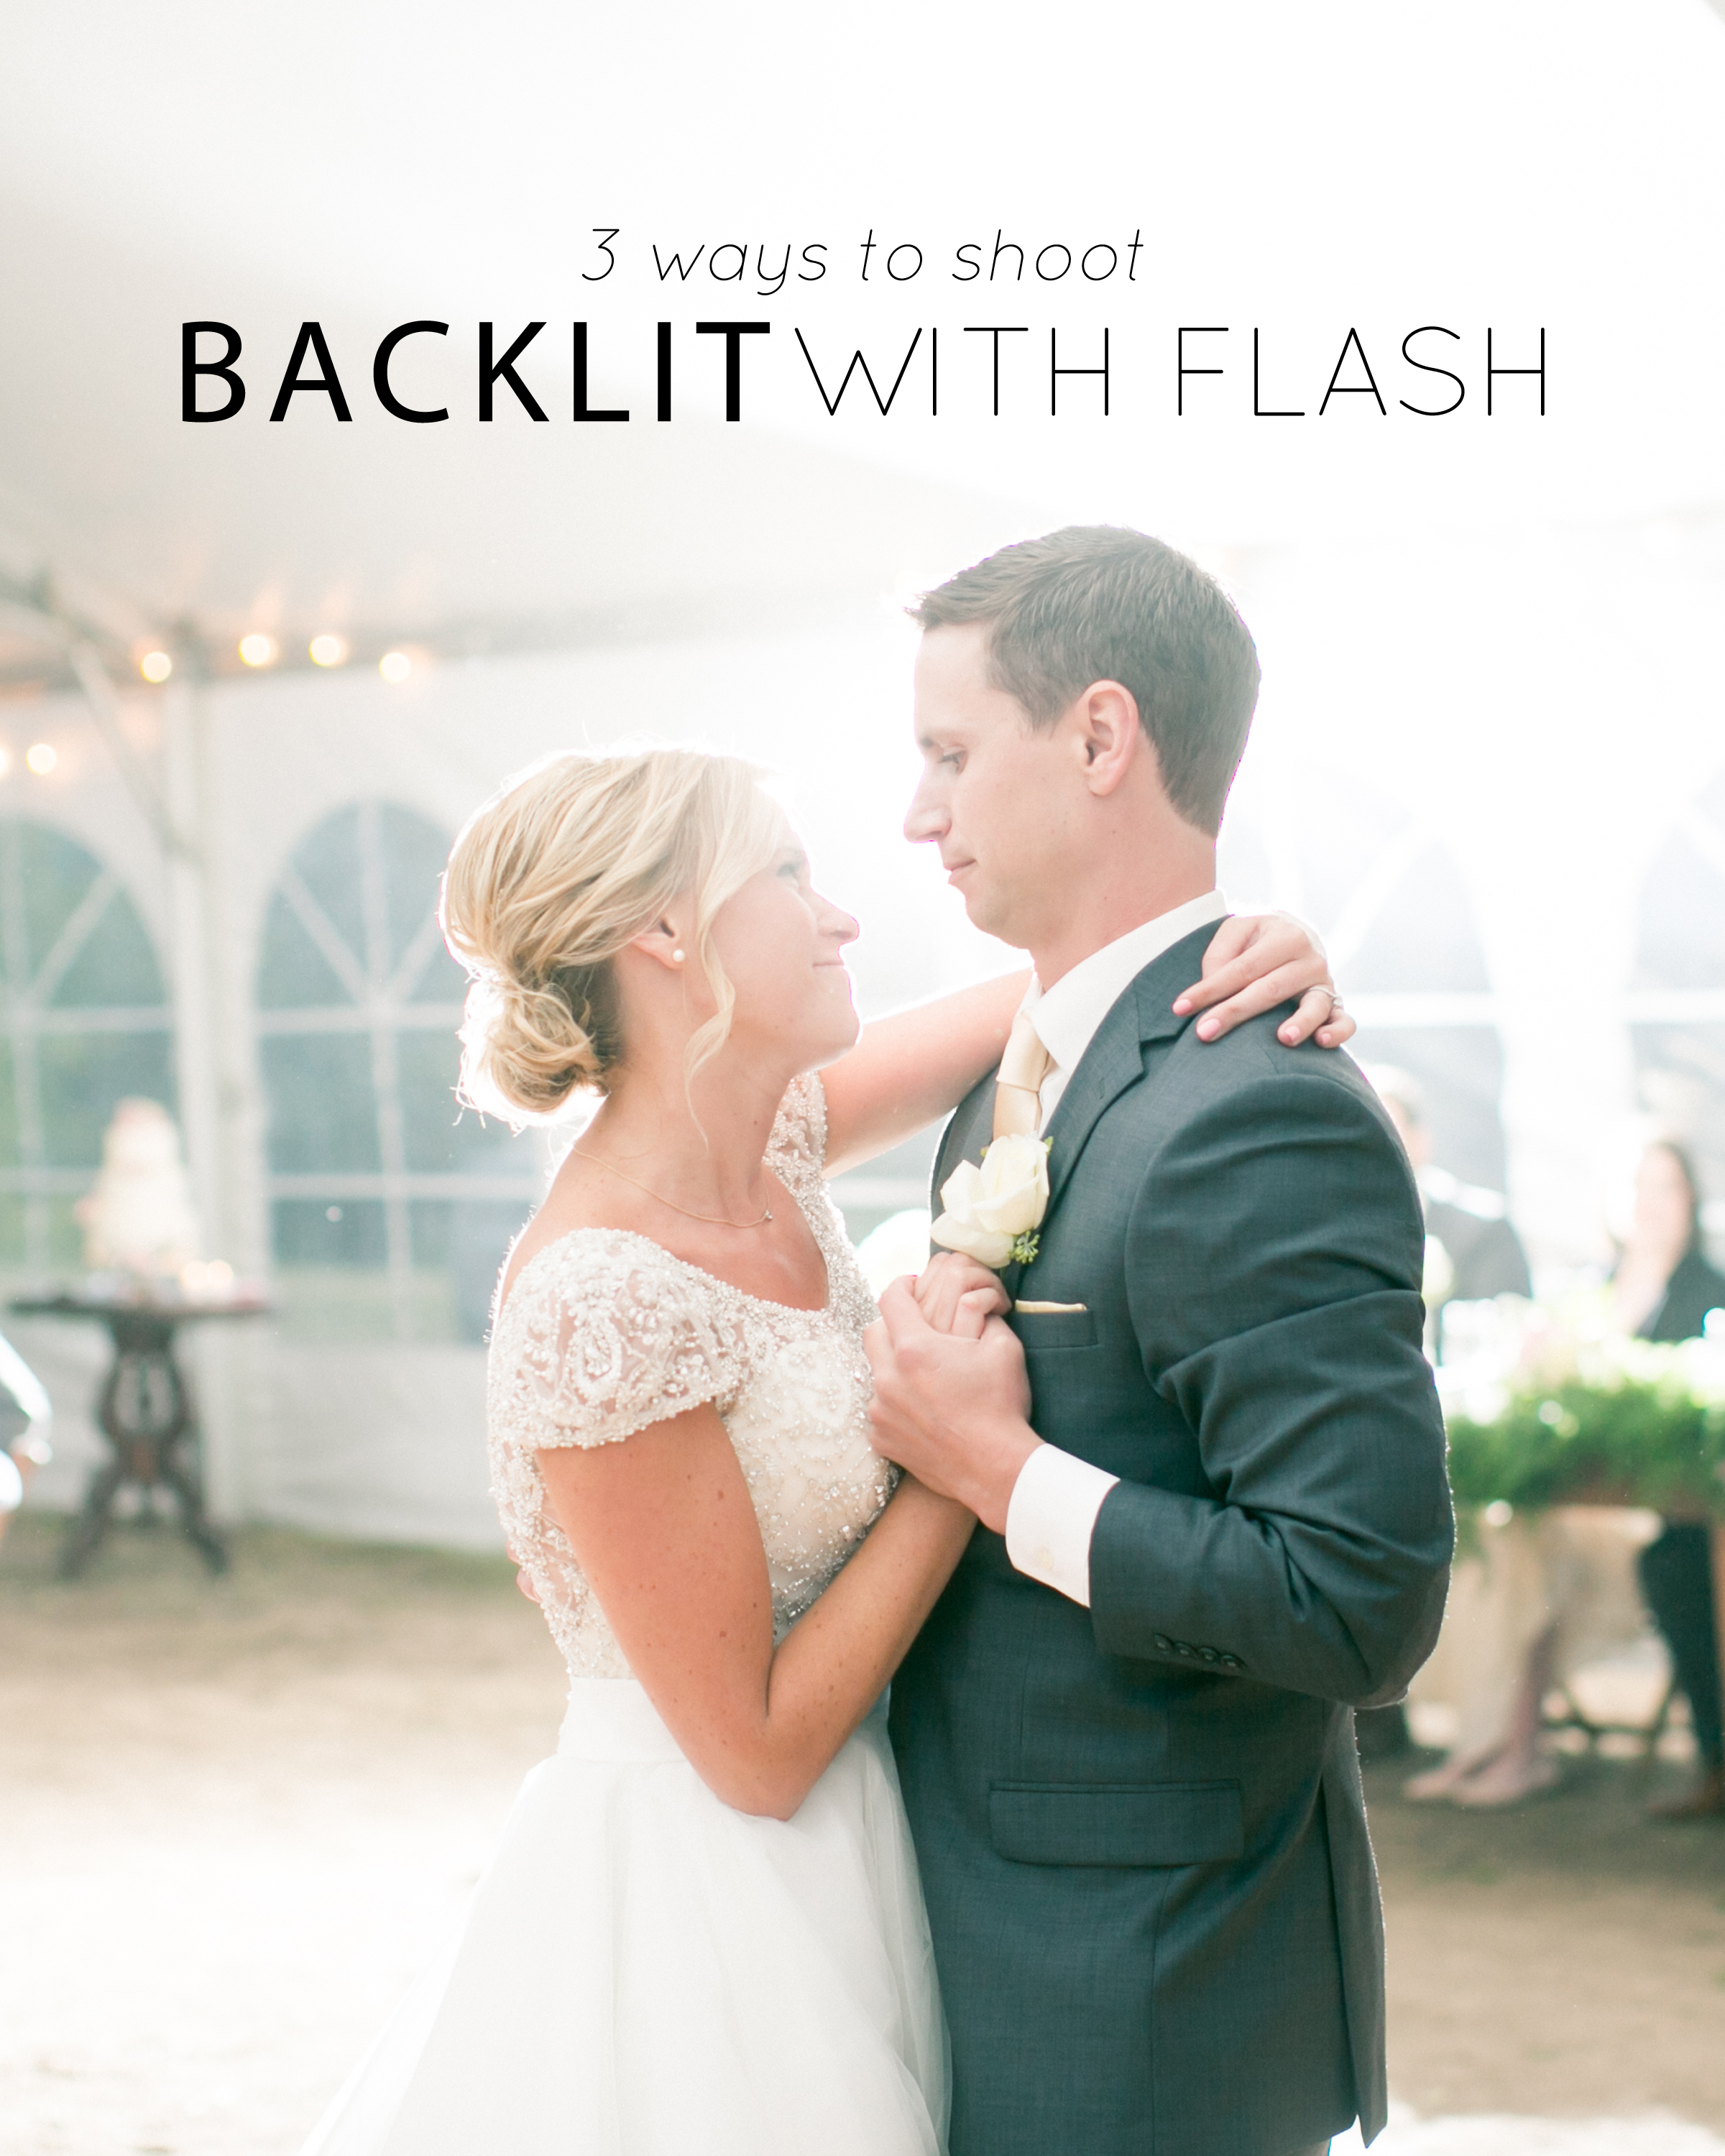 3 Ways to Shoot Backlit with Flash - The Jordan Brittley Blog (www.jordanbritleyblog.com)